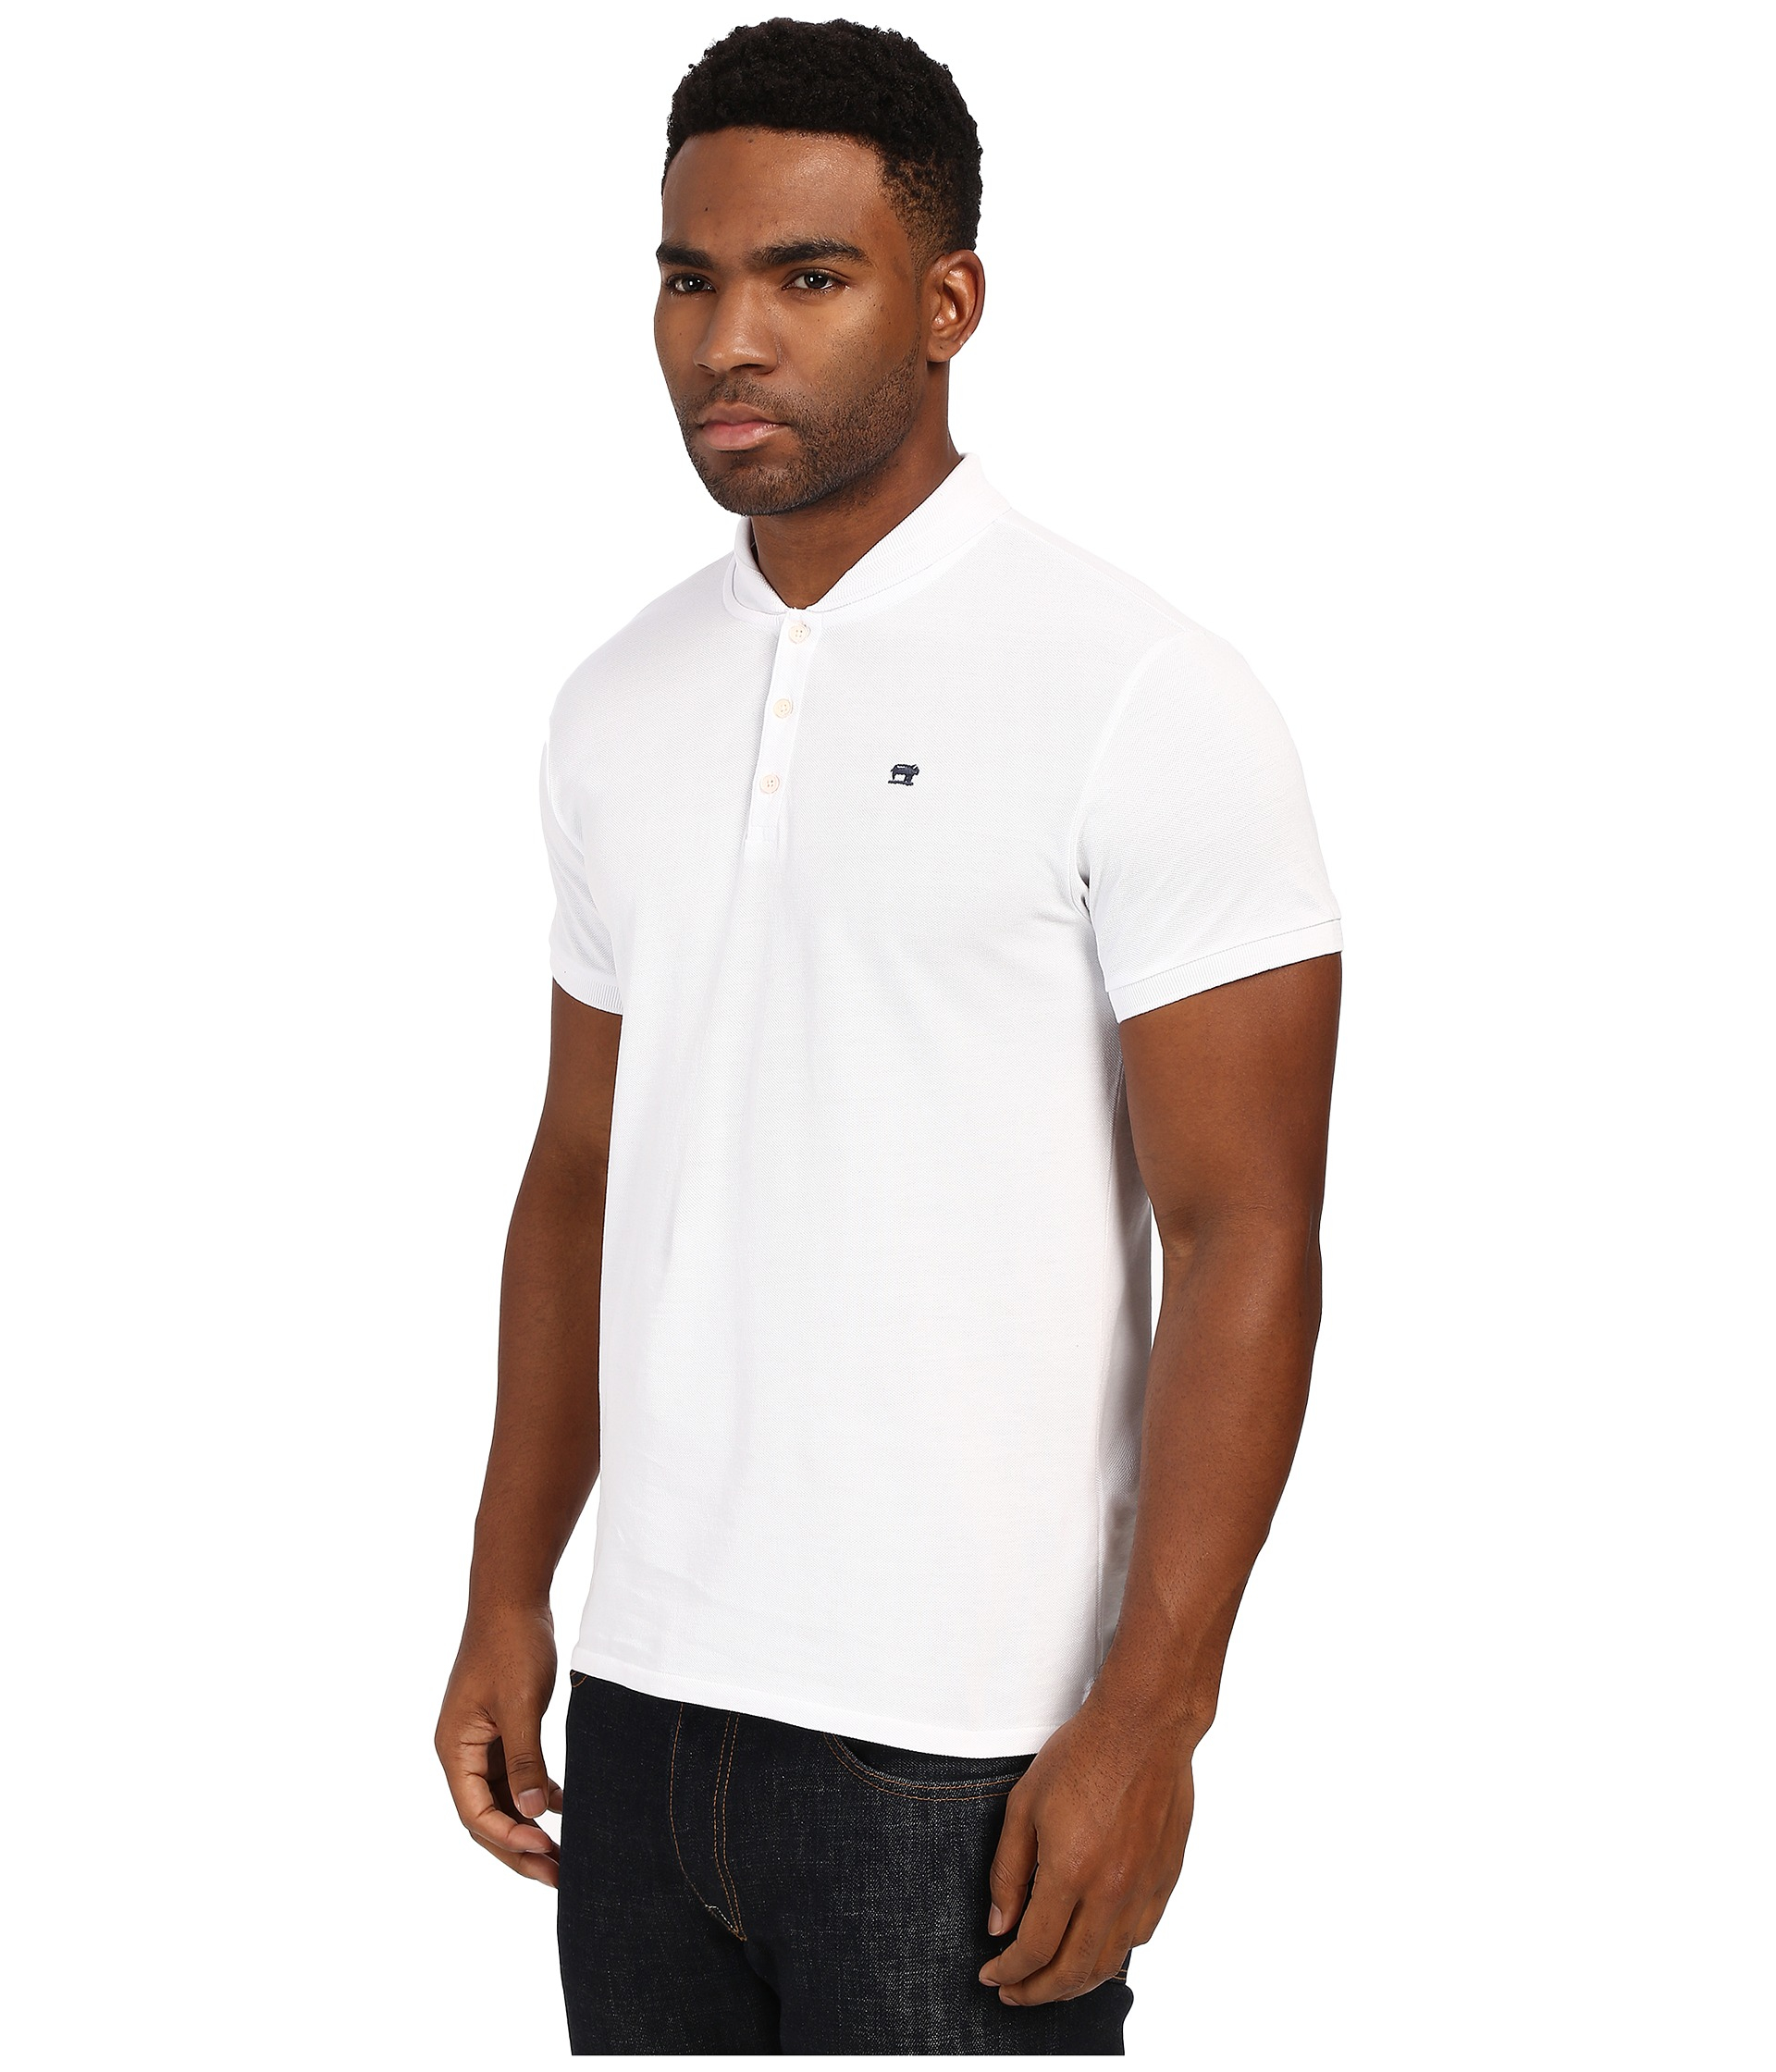 eaa16c77 Scotch & Soda Garment Dyed Sun Fade Polo With Bomber Collar in White for  Men - Lyst